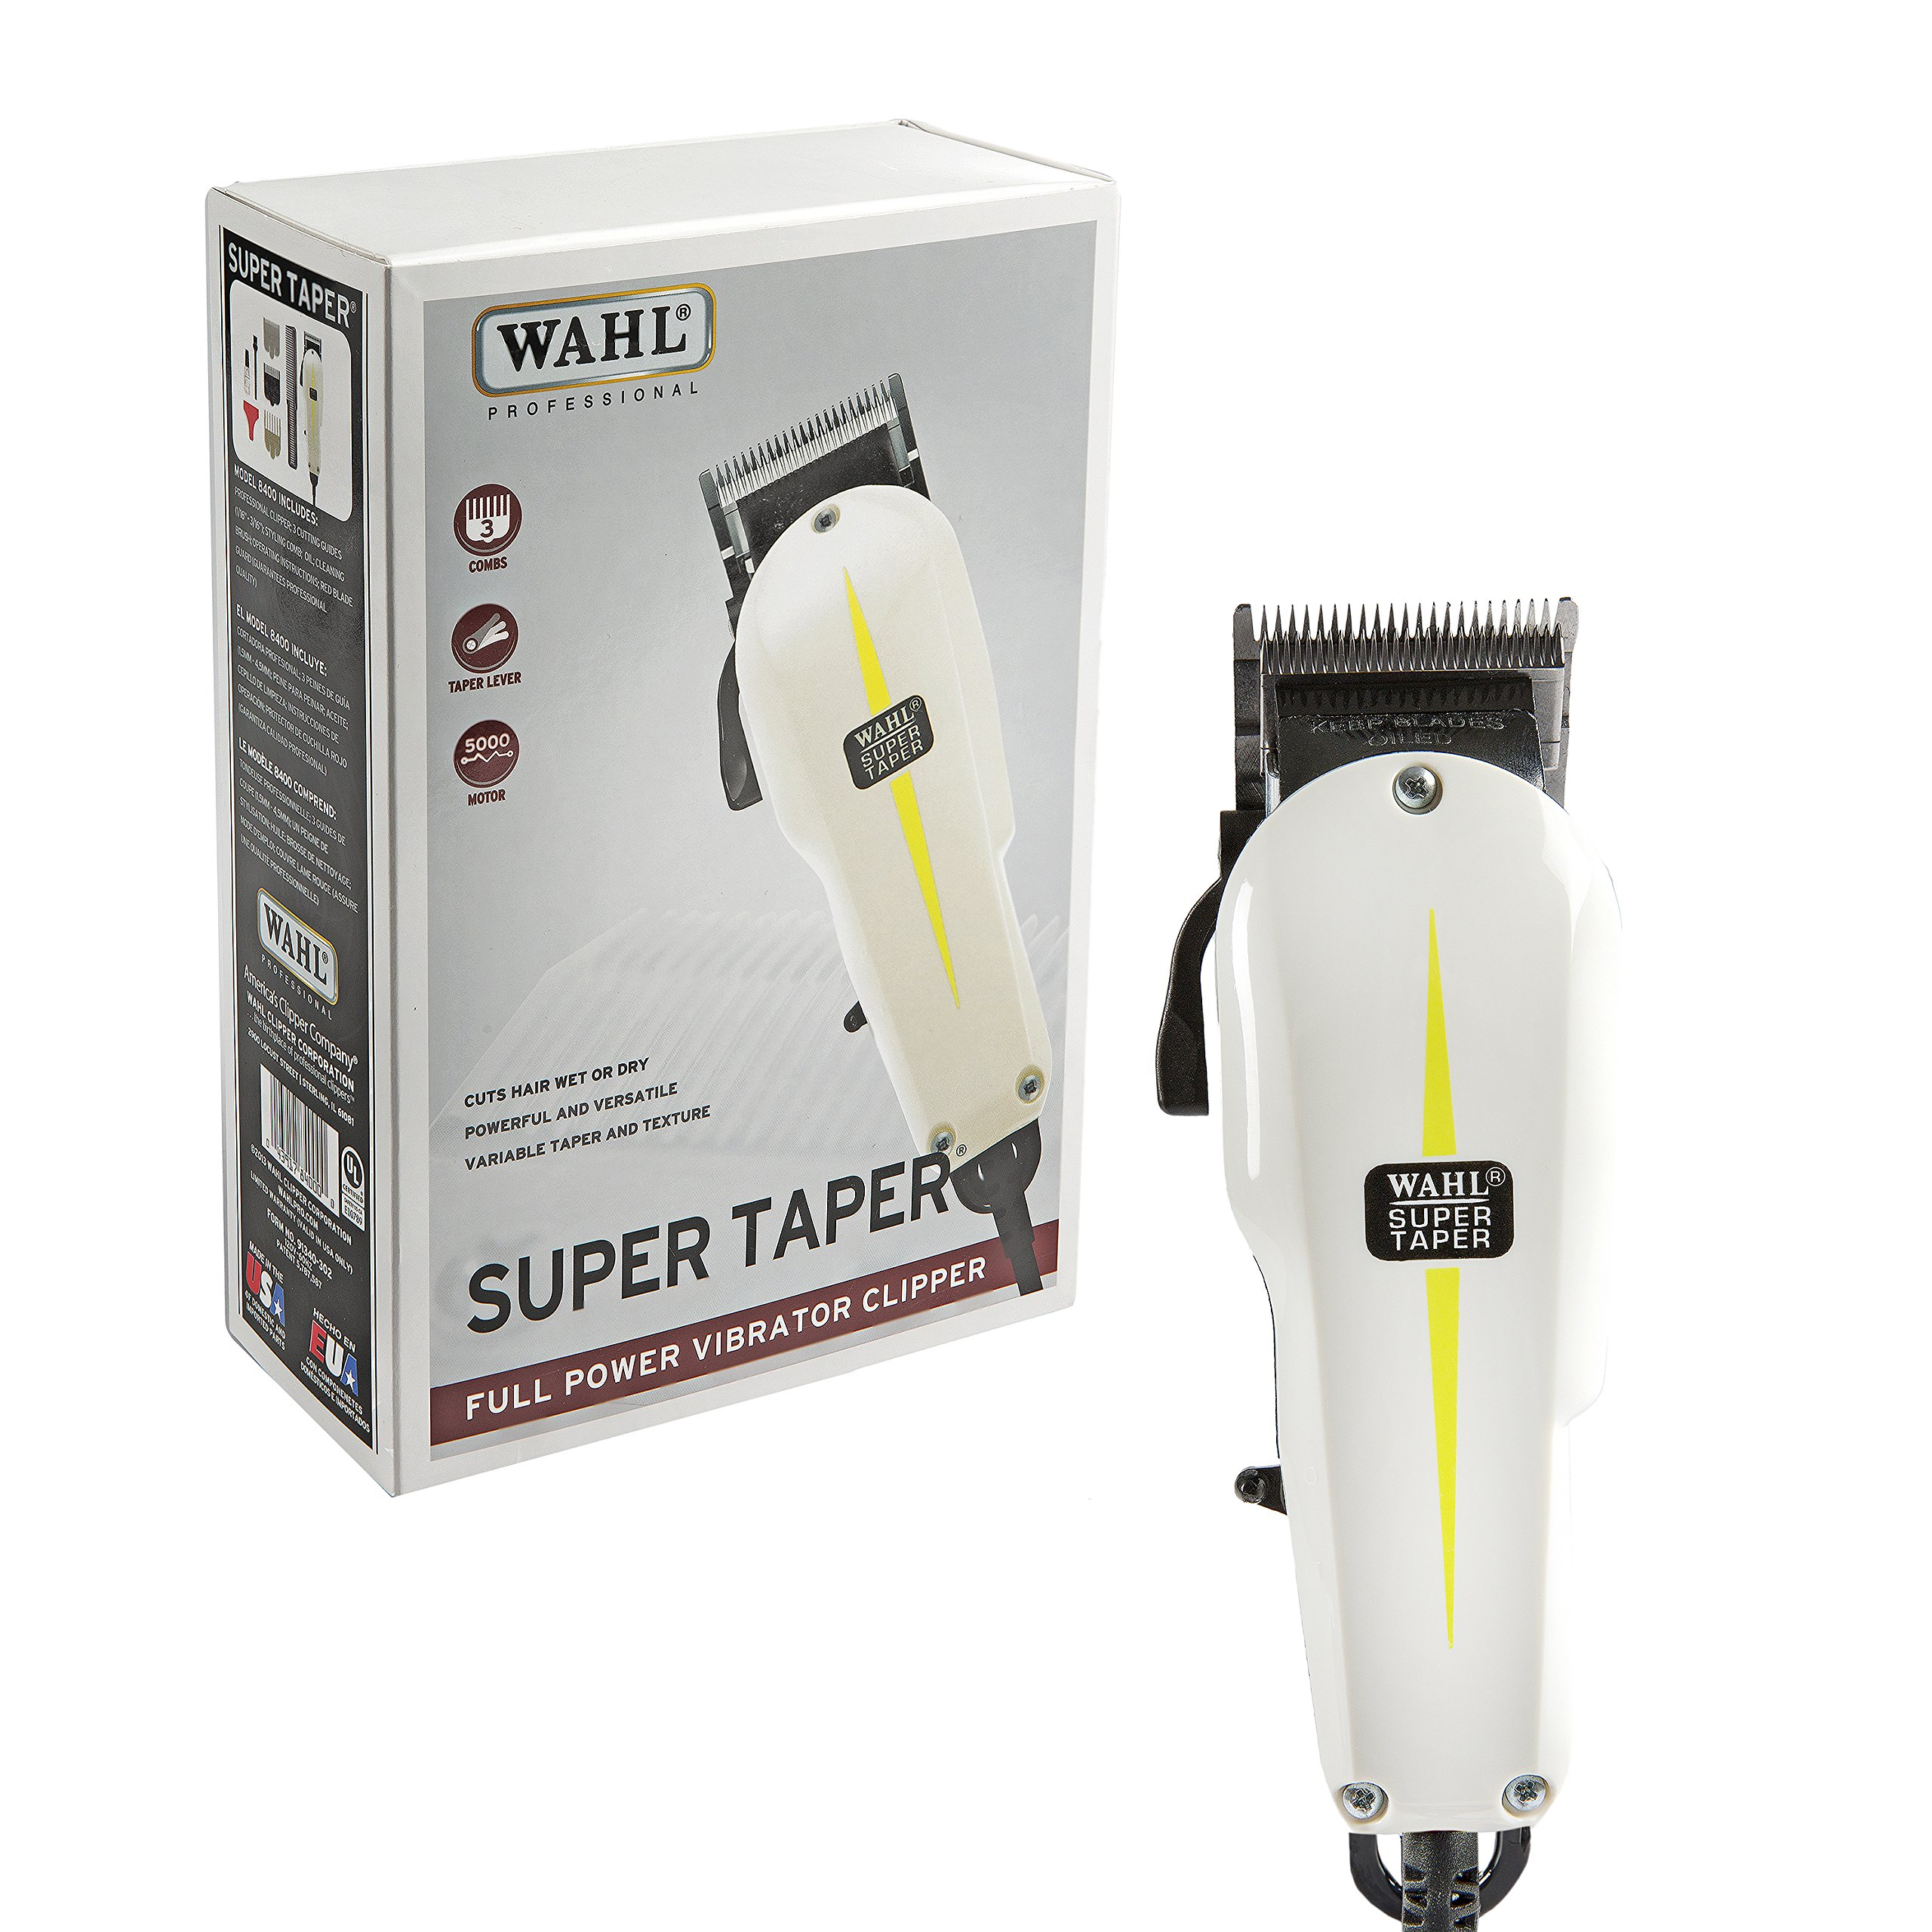 Wahl Professional Super Taper Hair Clipper #8400 - Full Power Vibrator Clipper - V5000 Electromagnetic Motor - Includes 3 Attachment Combs by Wahl Professional